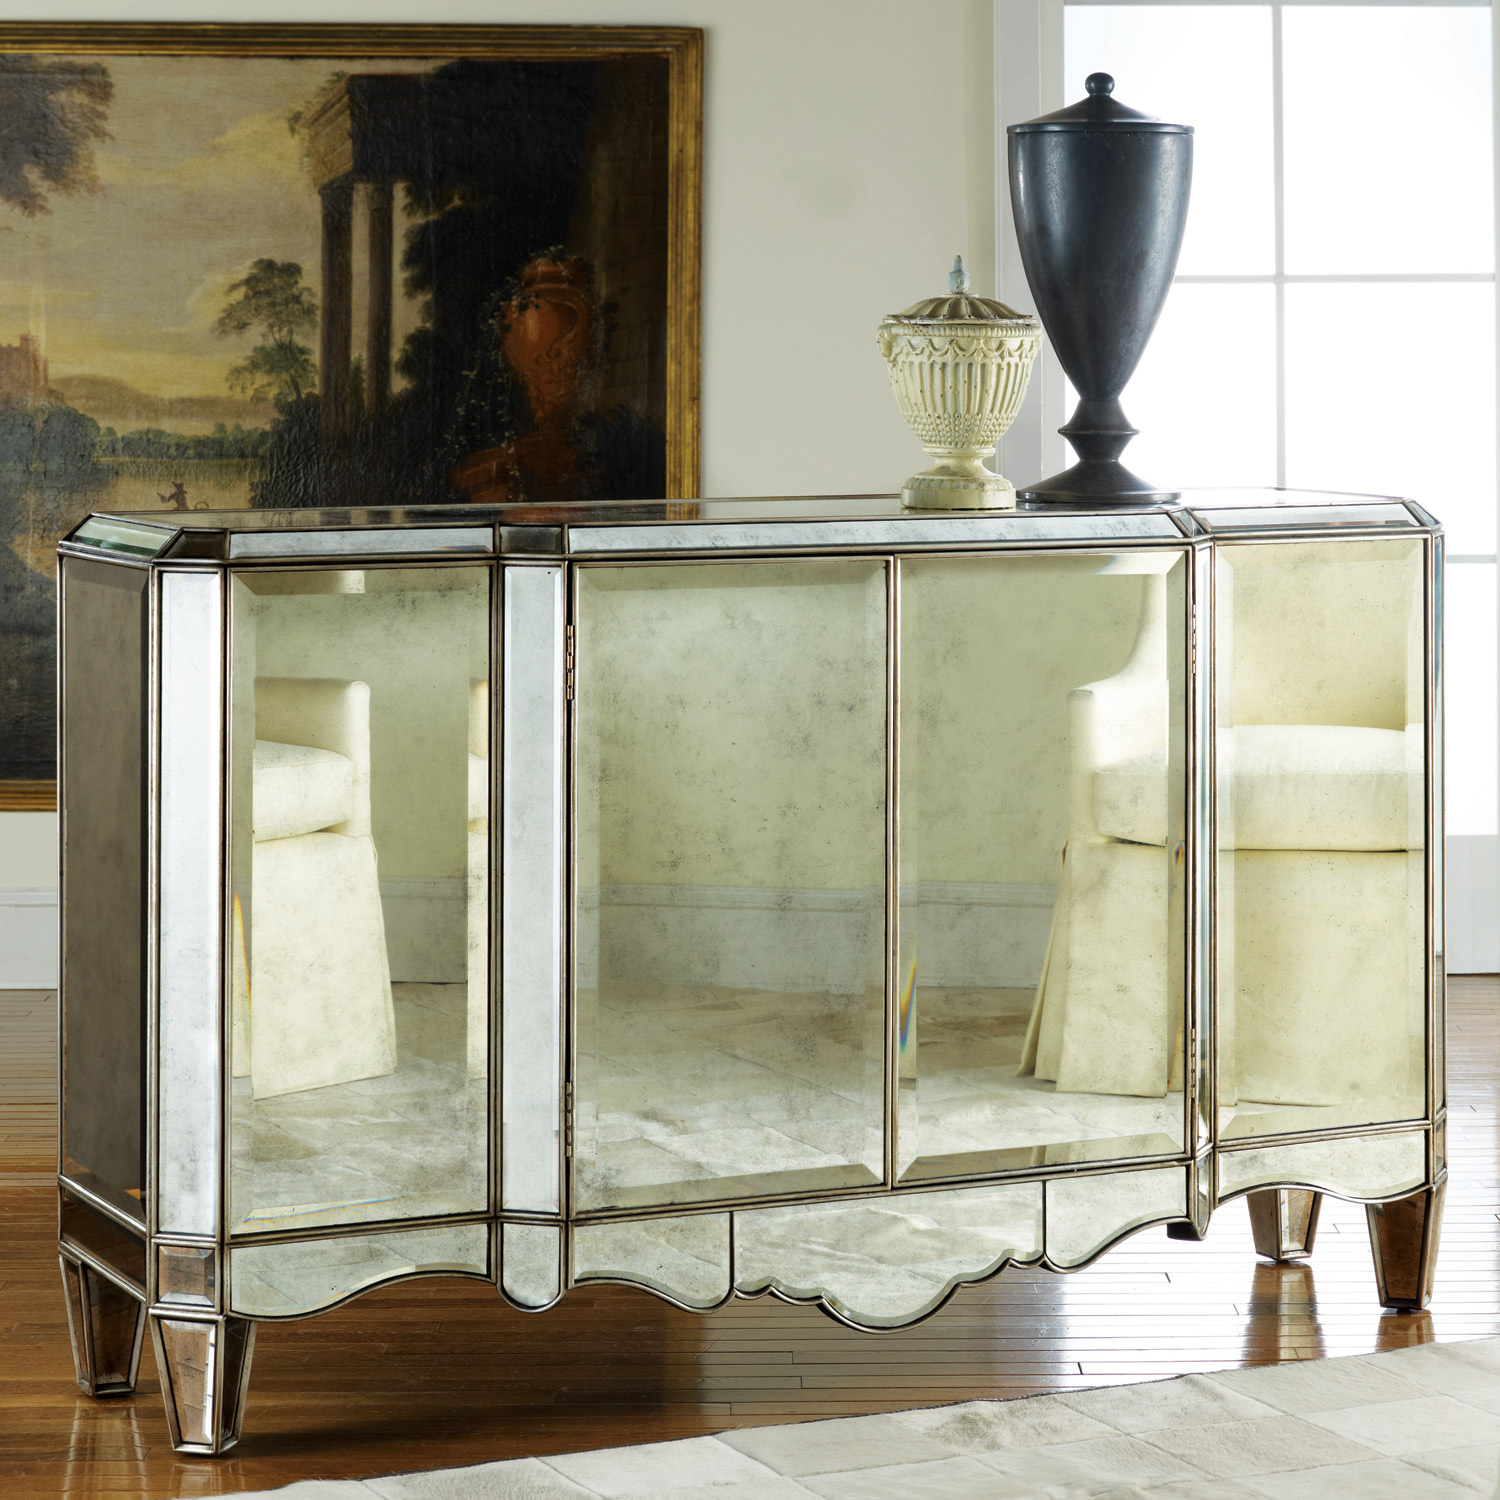 Creative mirrored sideboard with knobs silver color and with decorative pattern design mirrored sideboard ideas